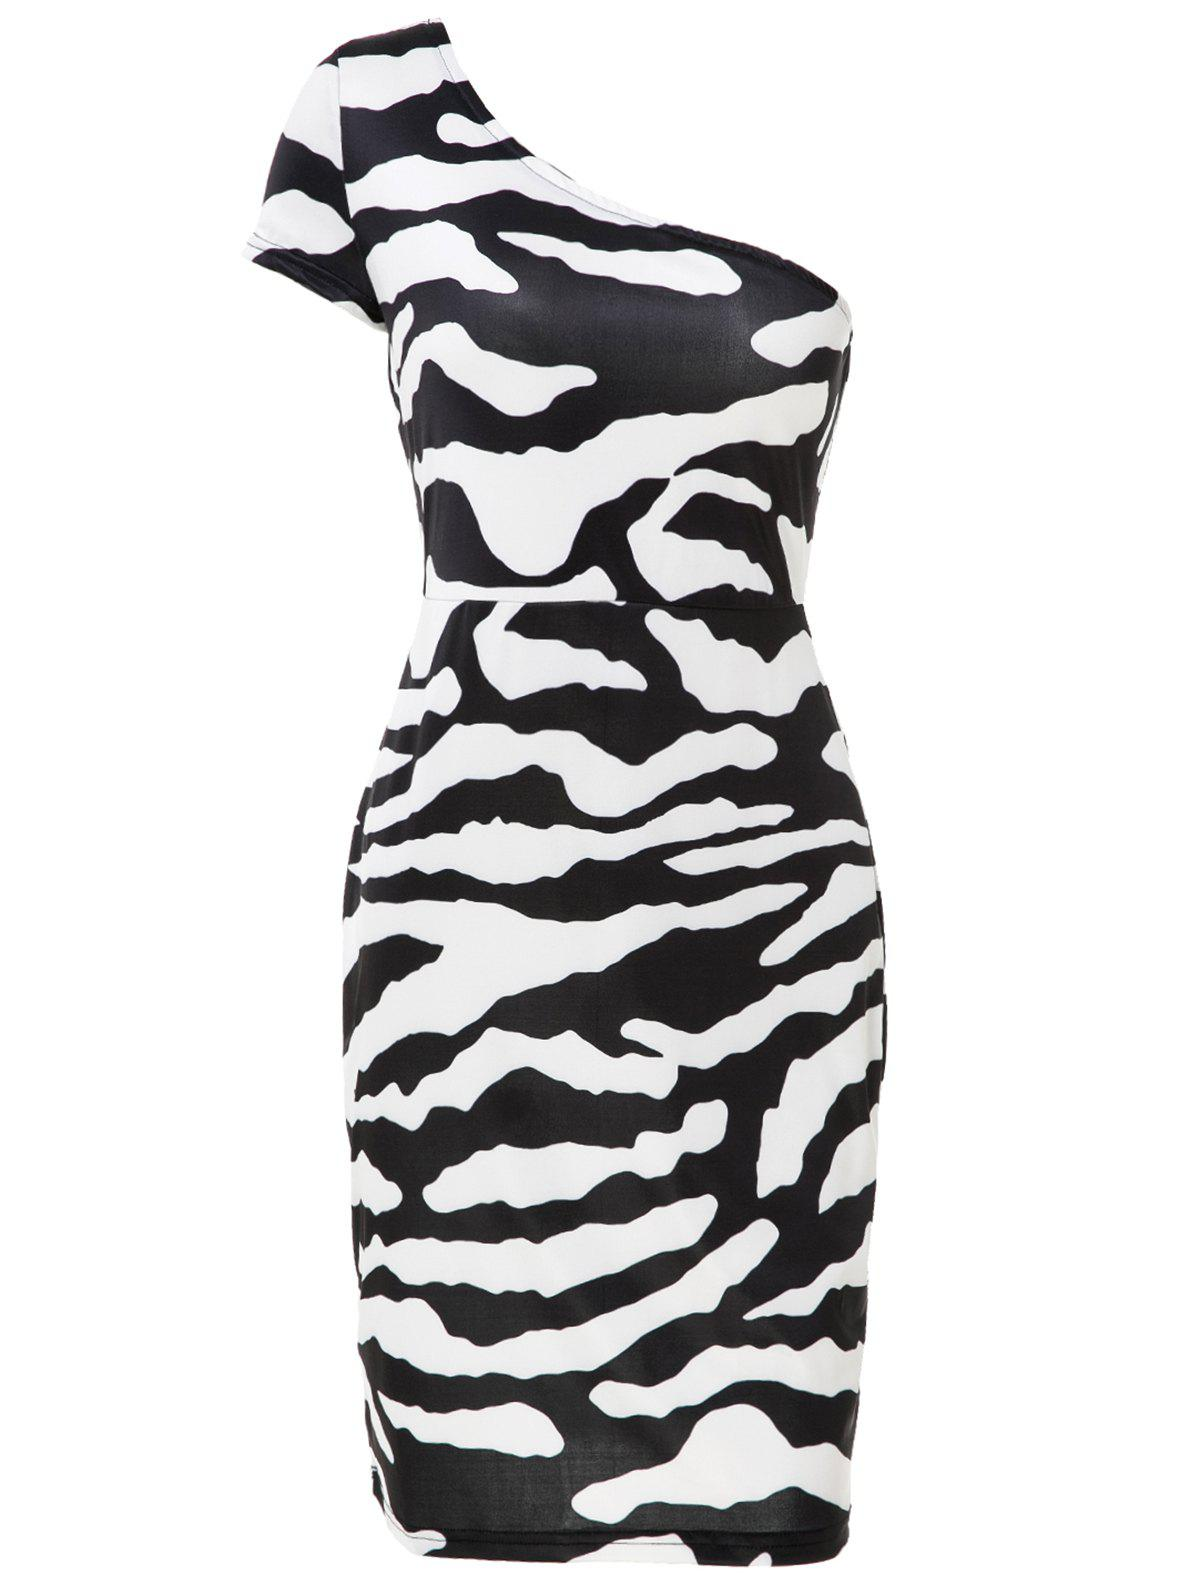 Chic One-Shoulder Short Sleeve Bodycon Zebra-Stripe Women's Dress - WHITE/BLACK 2XL